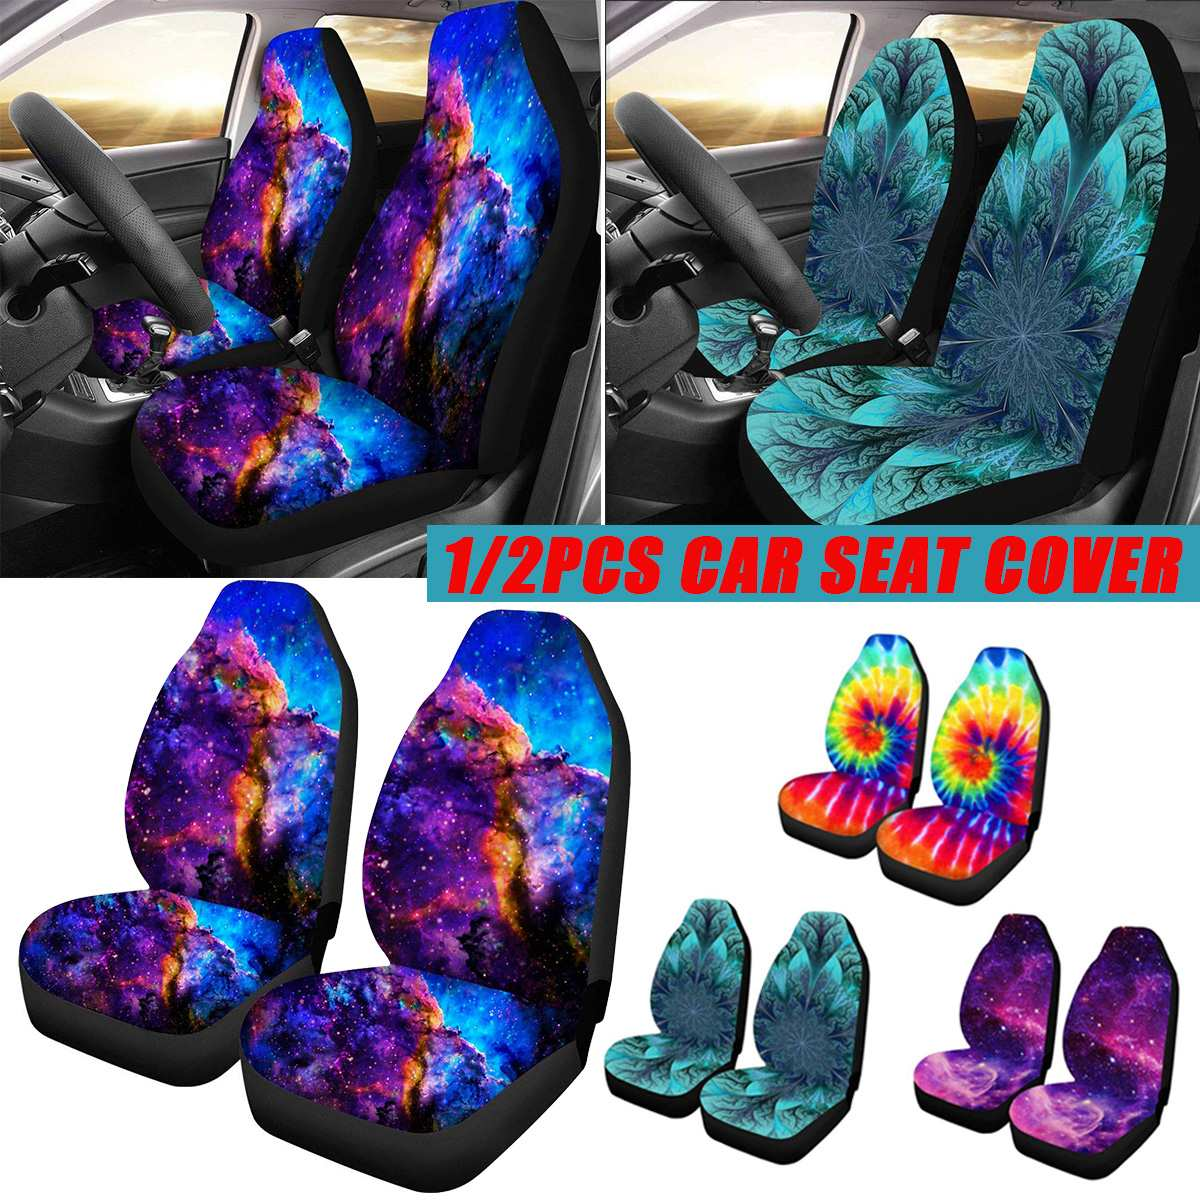 Mat Protector Van Car-Seat-Cover Truck Soft-Fabric Universal Most Auto 2pcs Front  title=